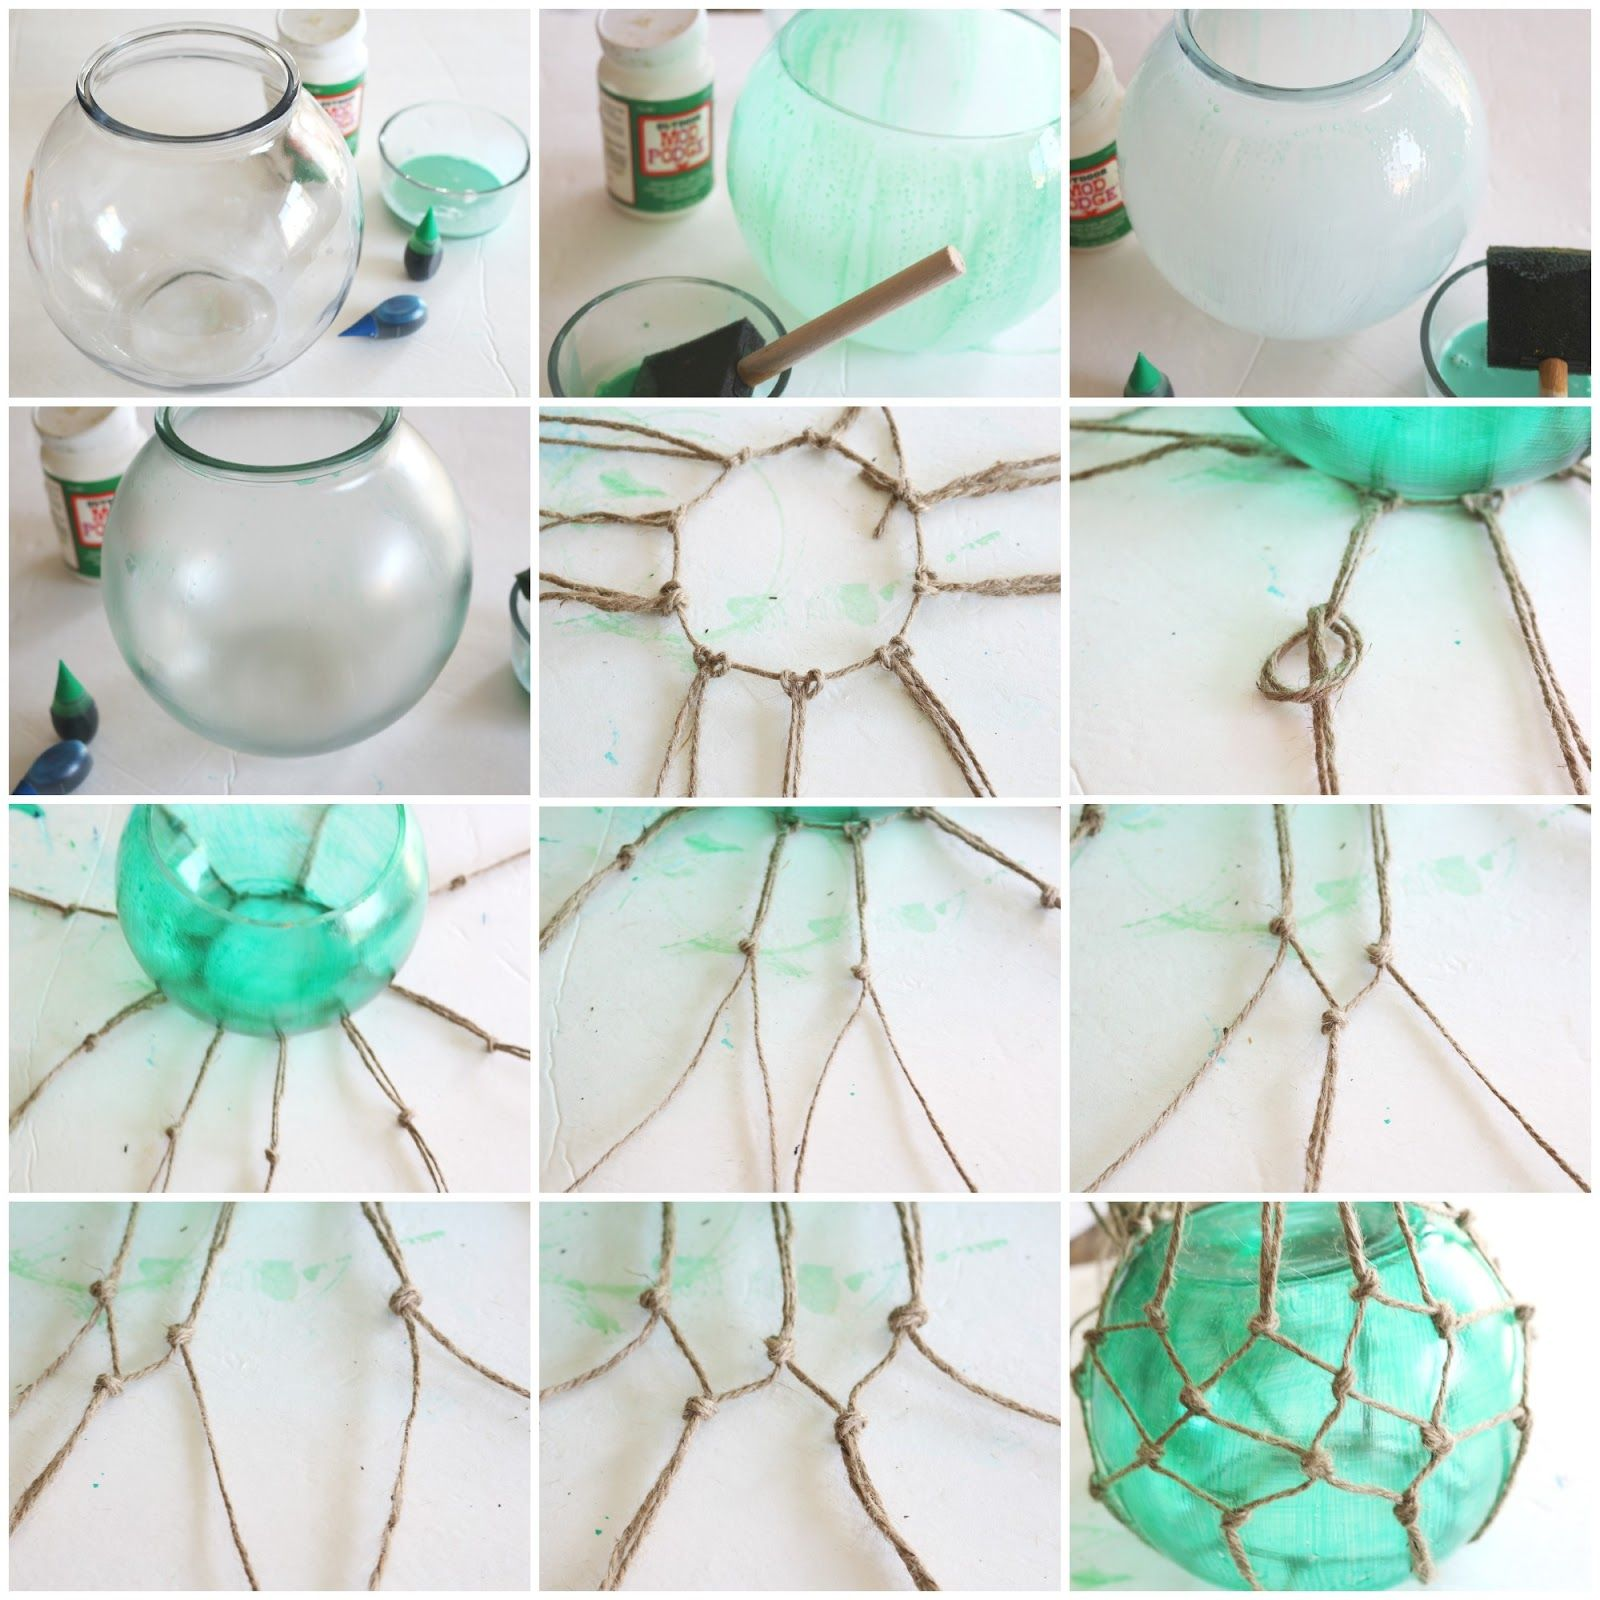 Small solar lights for crafts - Find This Pin And More On Nautical Crafts